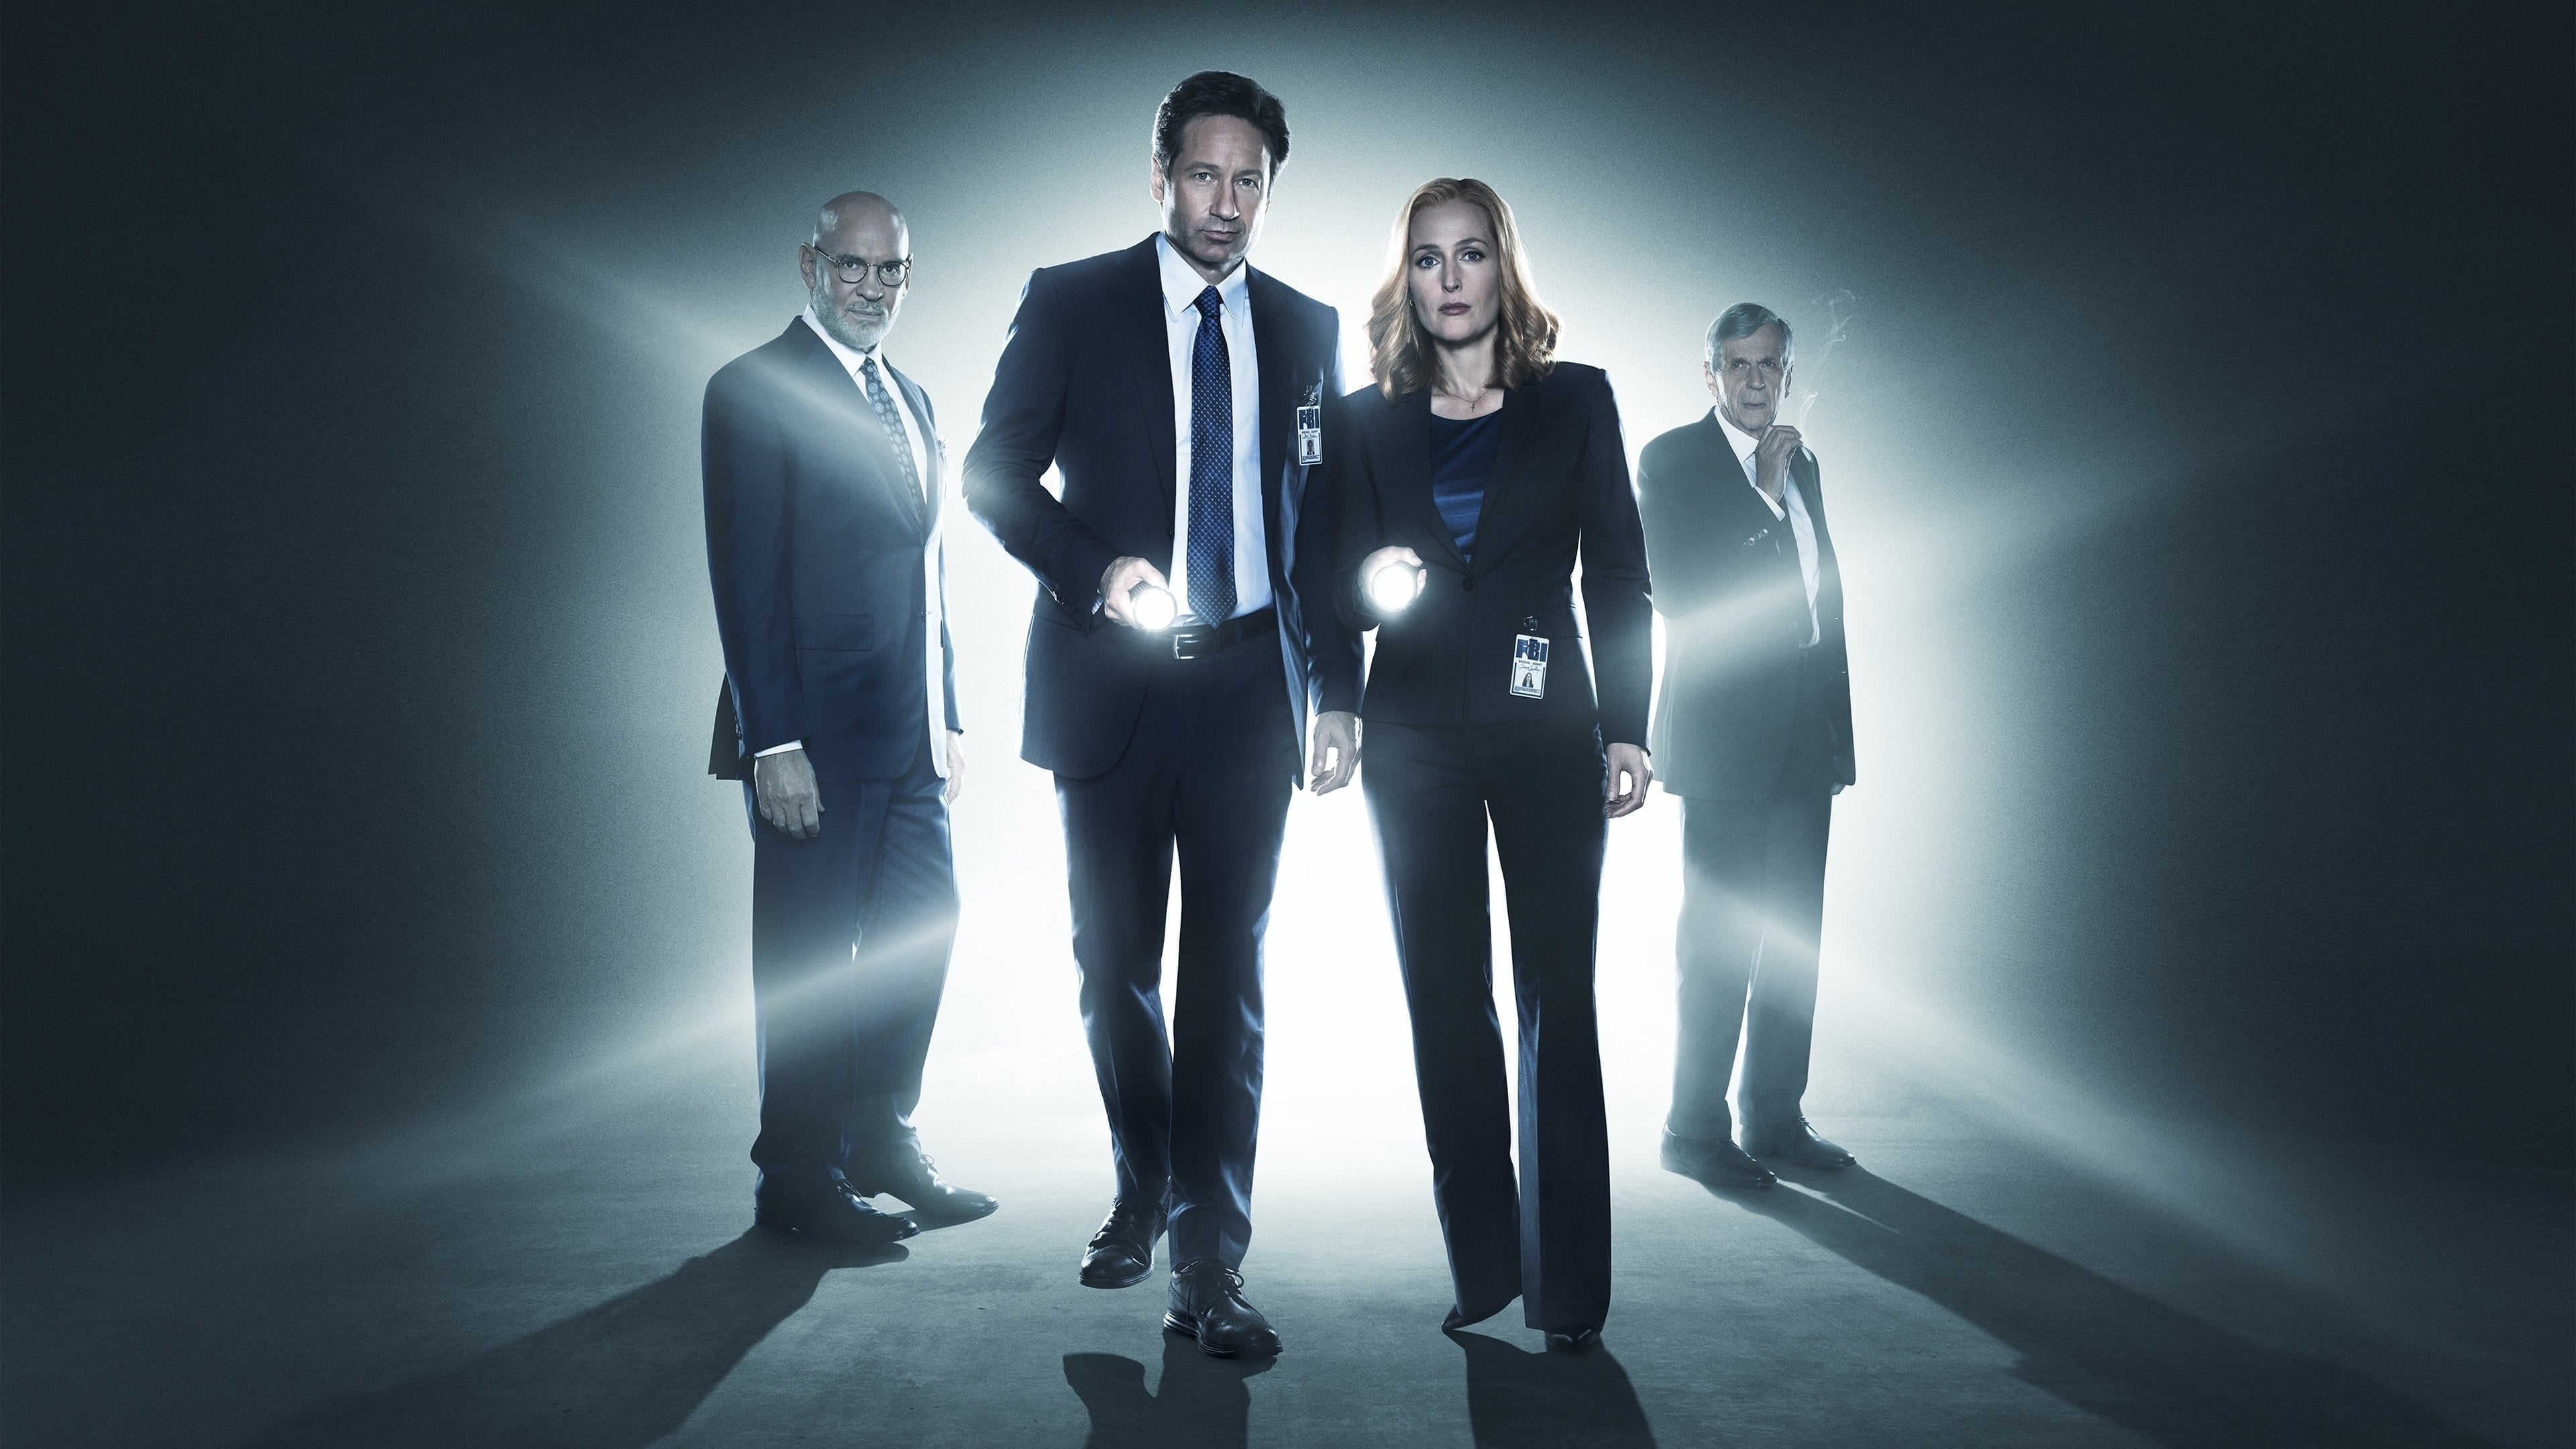 Fox brings Mulder and Scully together again in The X Files